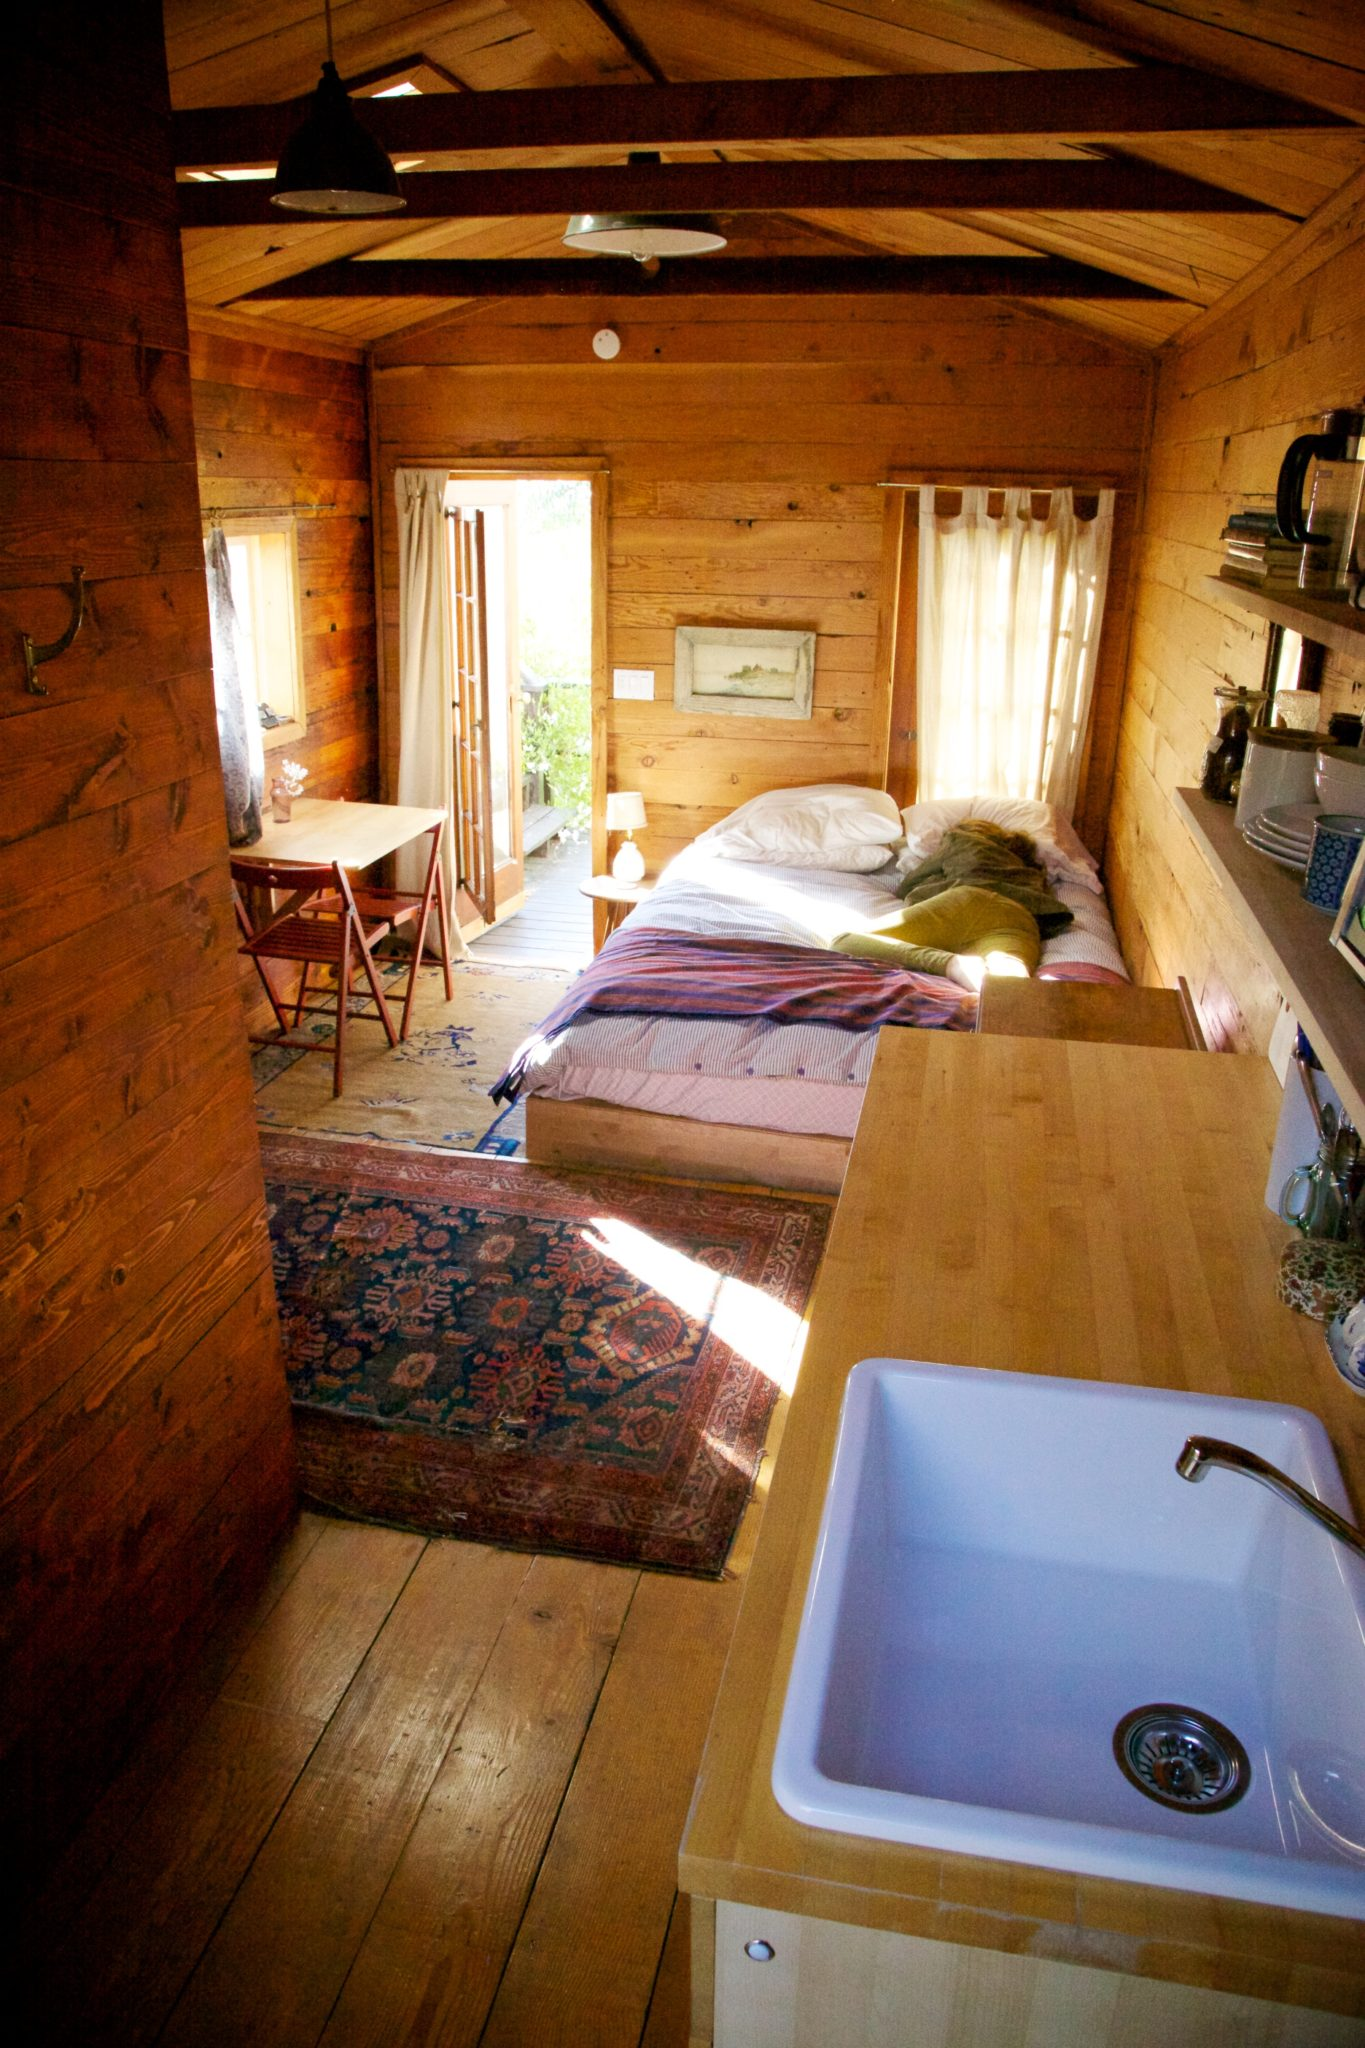 Our Silverlake Airbnb cabin & a snoozing Carissa